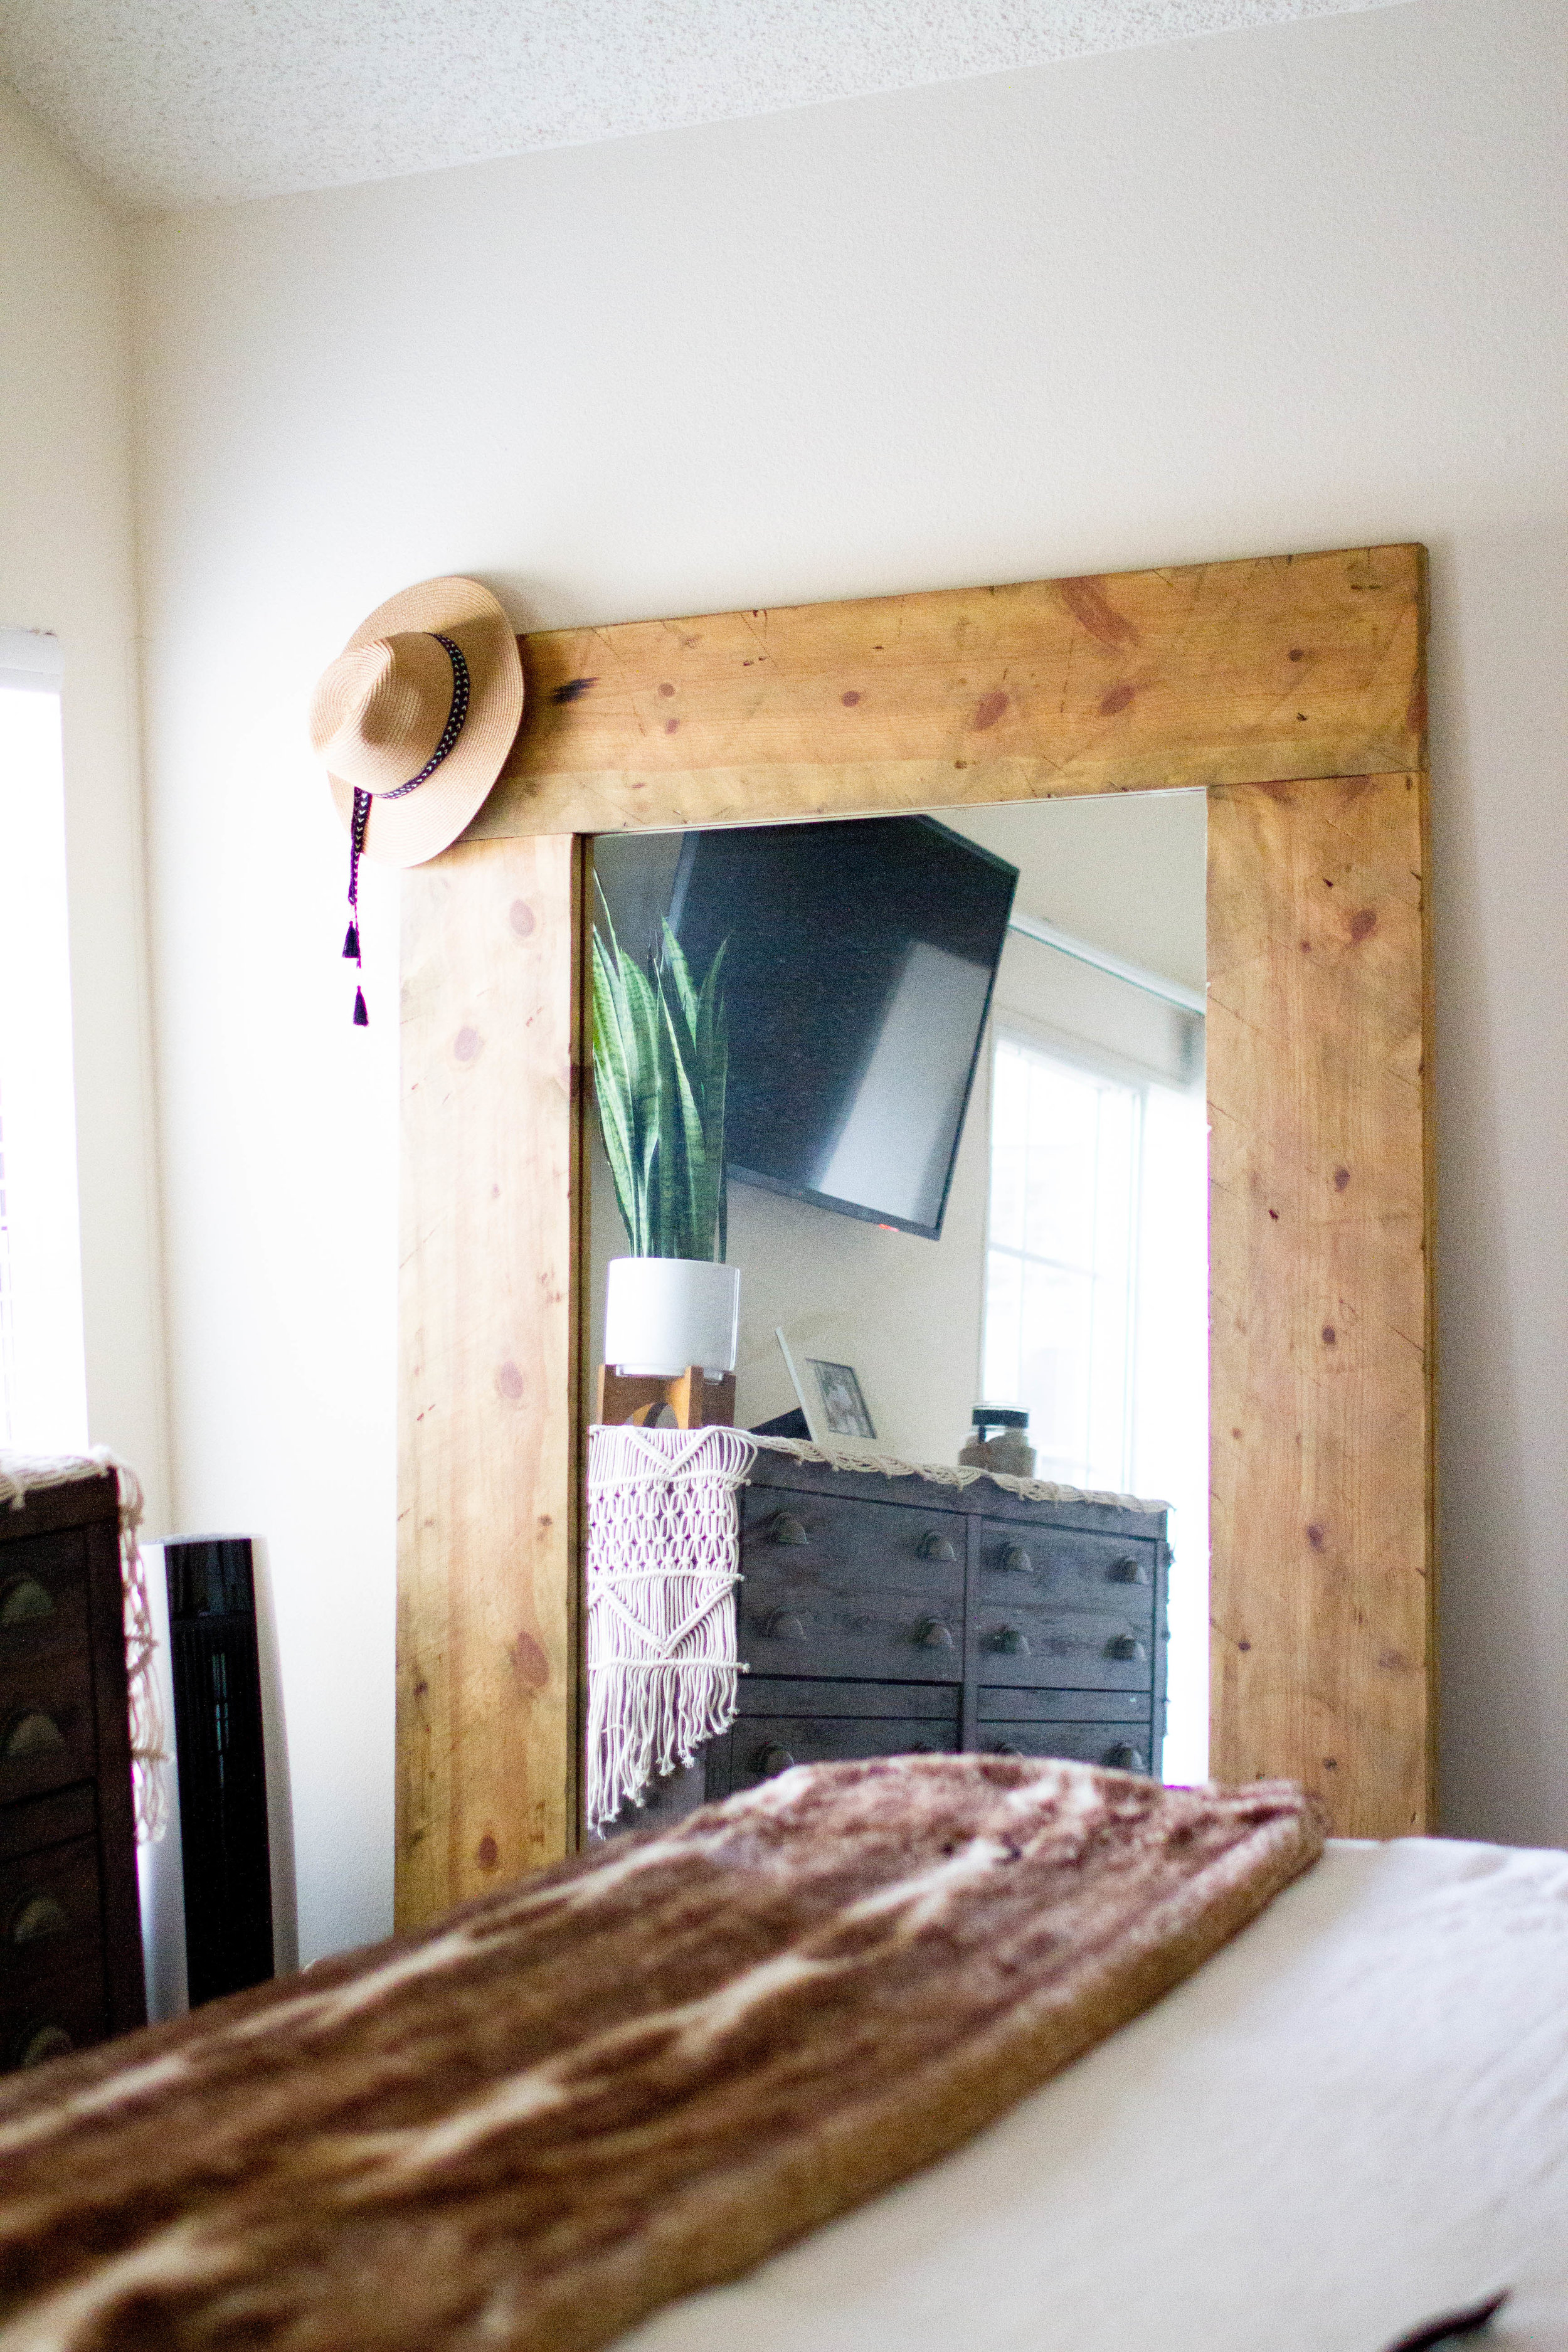 Similar mirror linked  HERE  or contact me for details on customizing your own! (Aaron is amazing!)